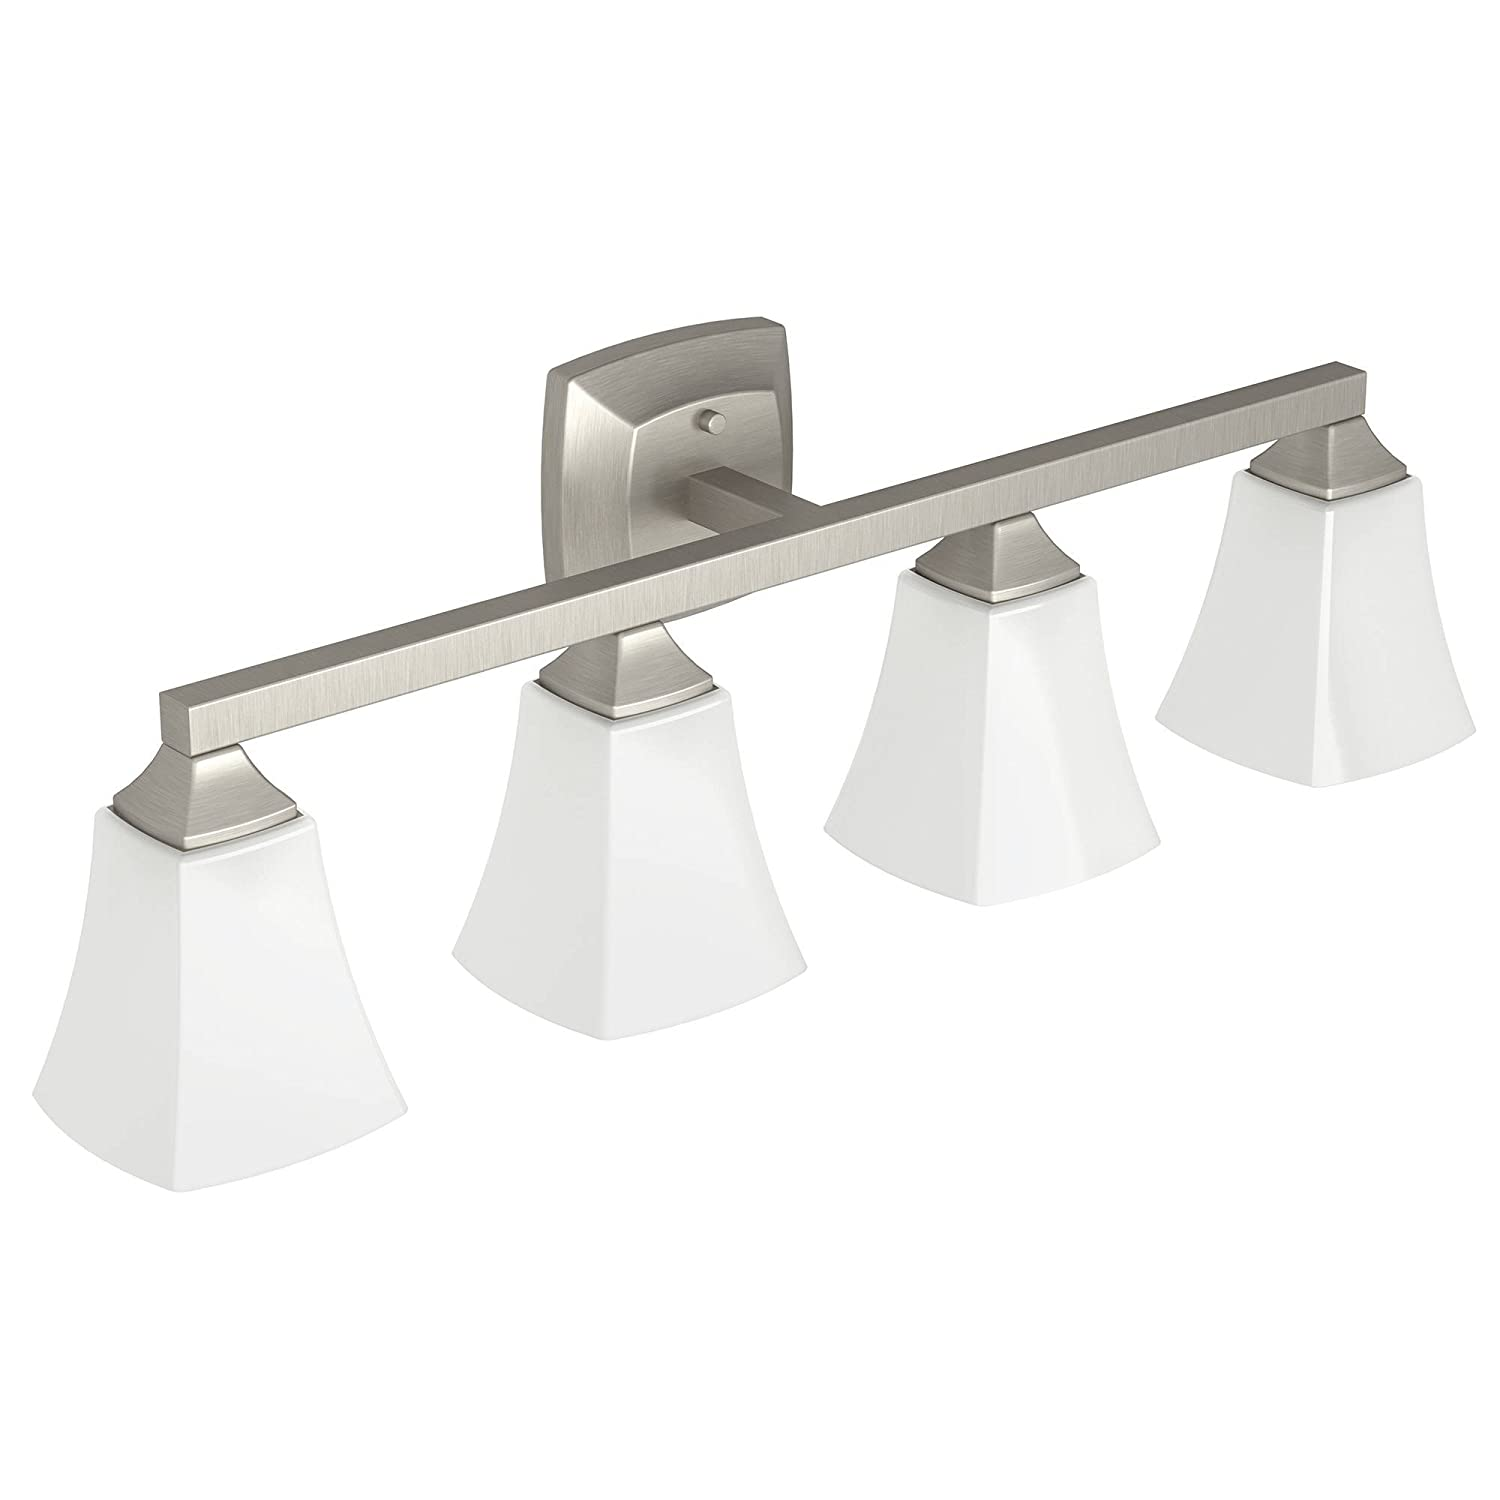 Captivating Moen YB5164BN Voss Bath Lighting Four Globe, Brushed Nickel     Amazon.com